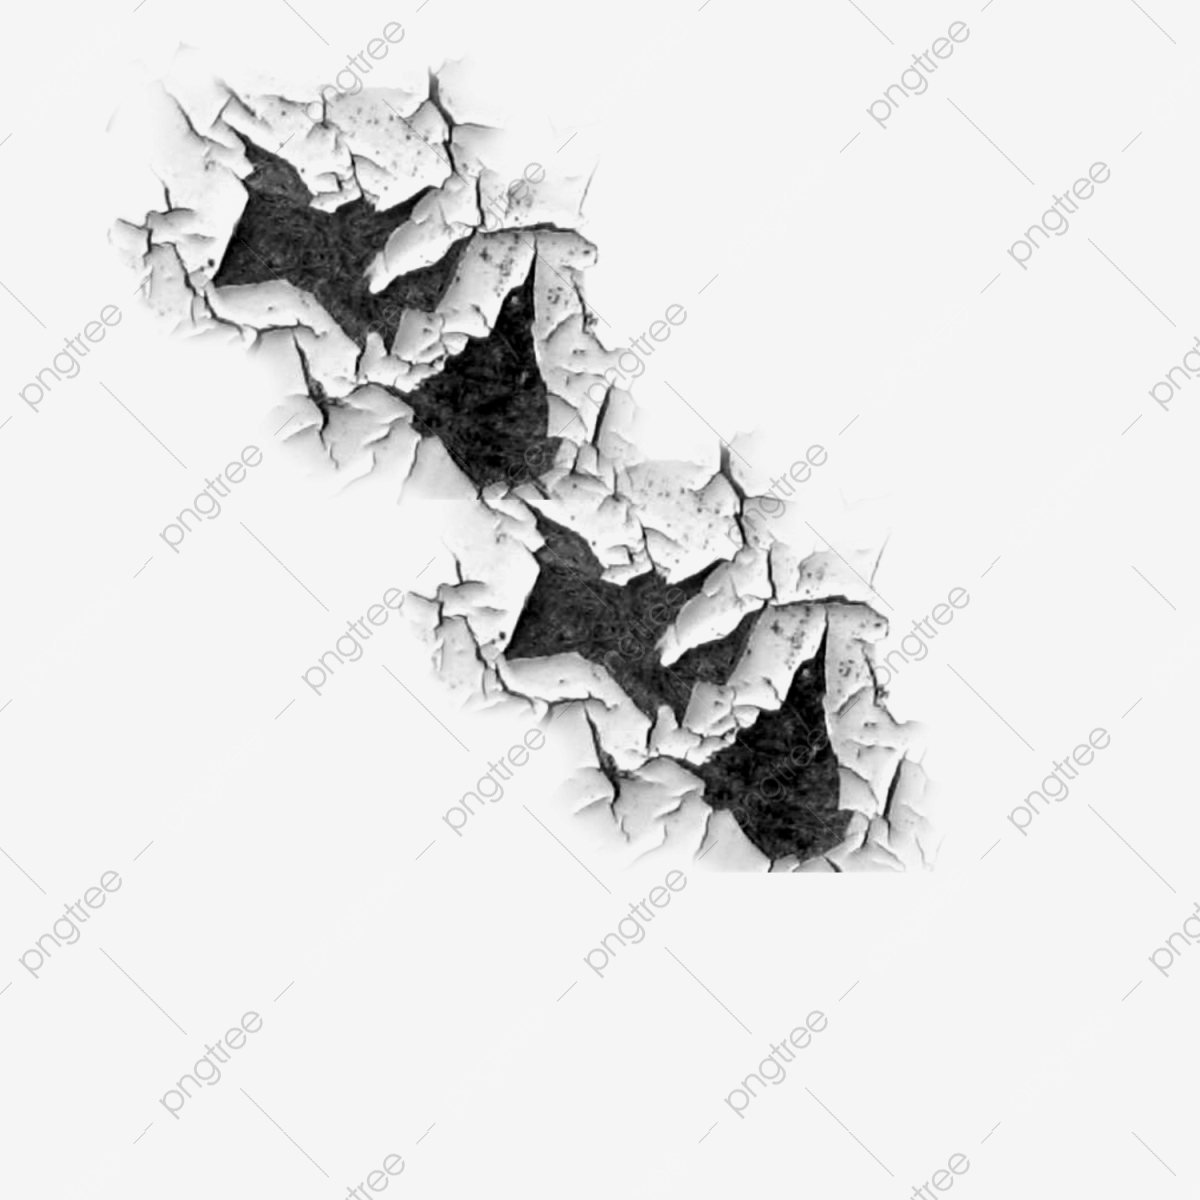 Drought water shortage chapped. Hole clipart land